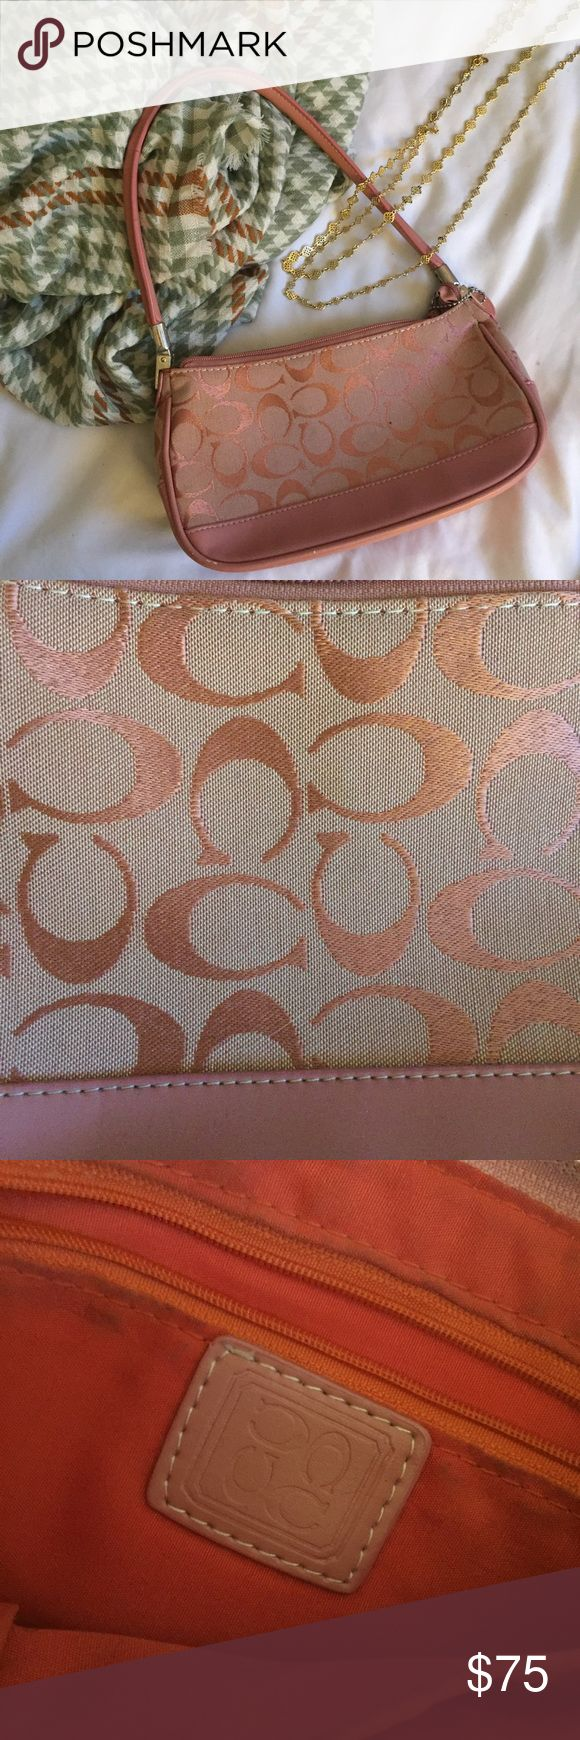 Lovely Pink Coach Purse Beautiful pink Coach bag, lovingly used for two years. It's in great condition on the outside, but could use a nice cleaning on the inside, so I've marked it down. Make me an offer! Coach Bags